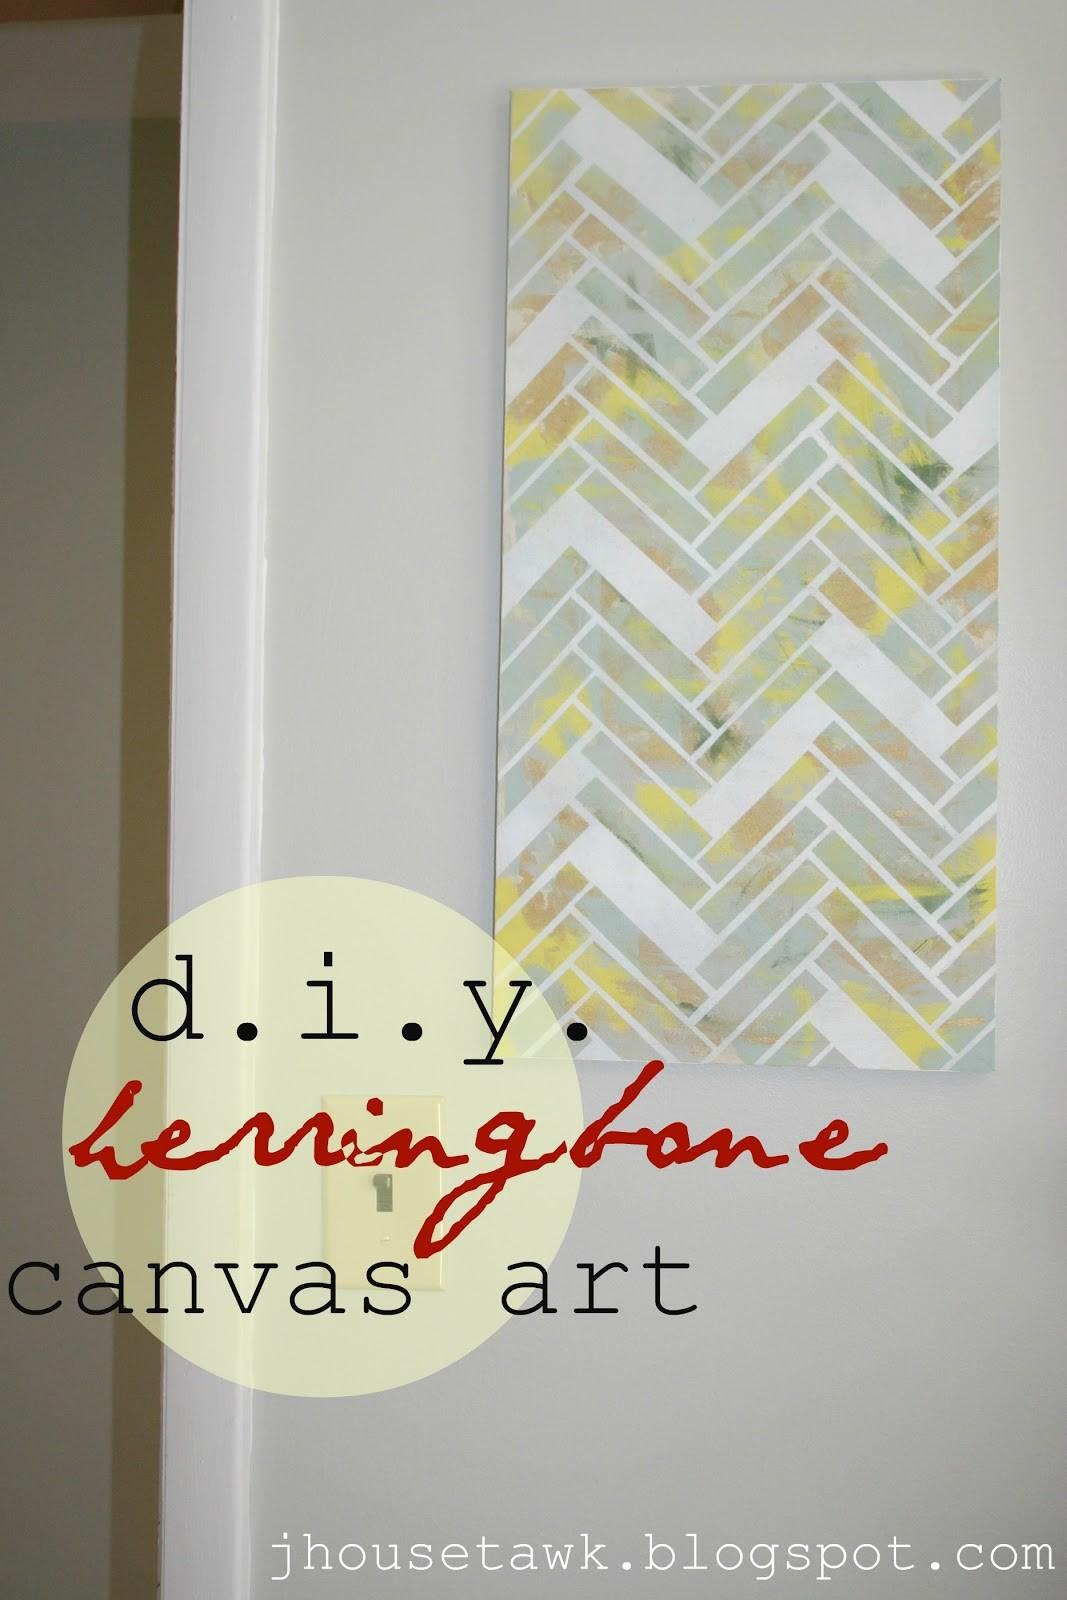 House Tawk Diy Herringbone Canvas Art